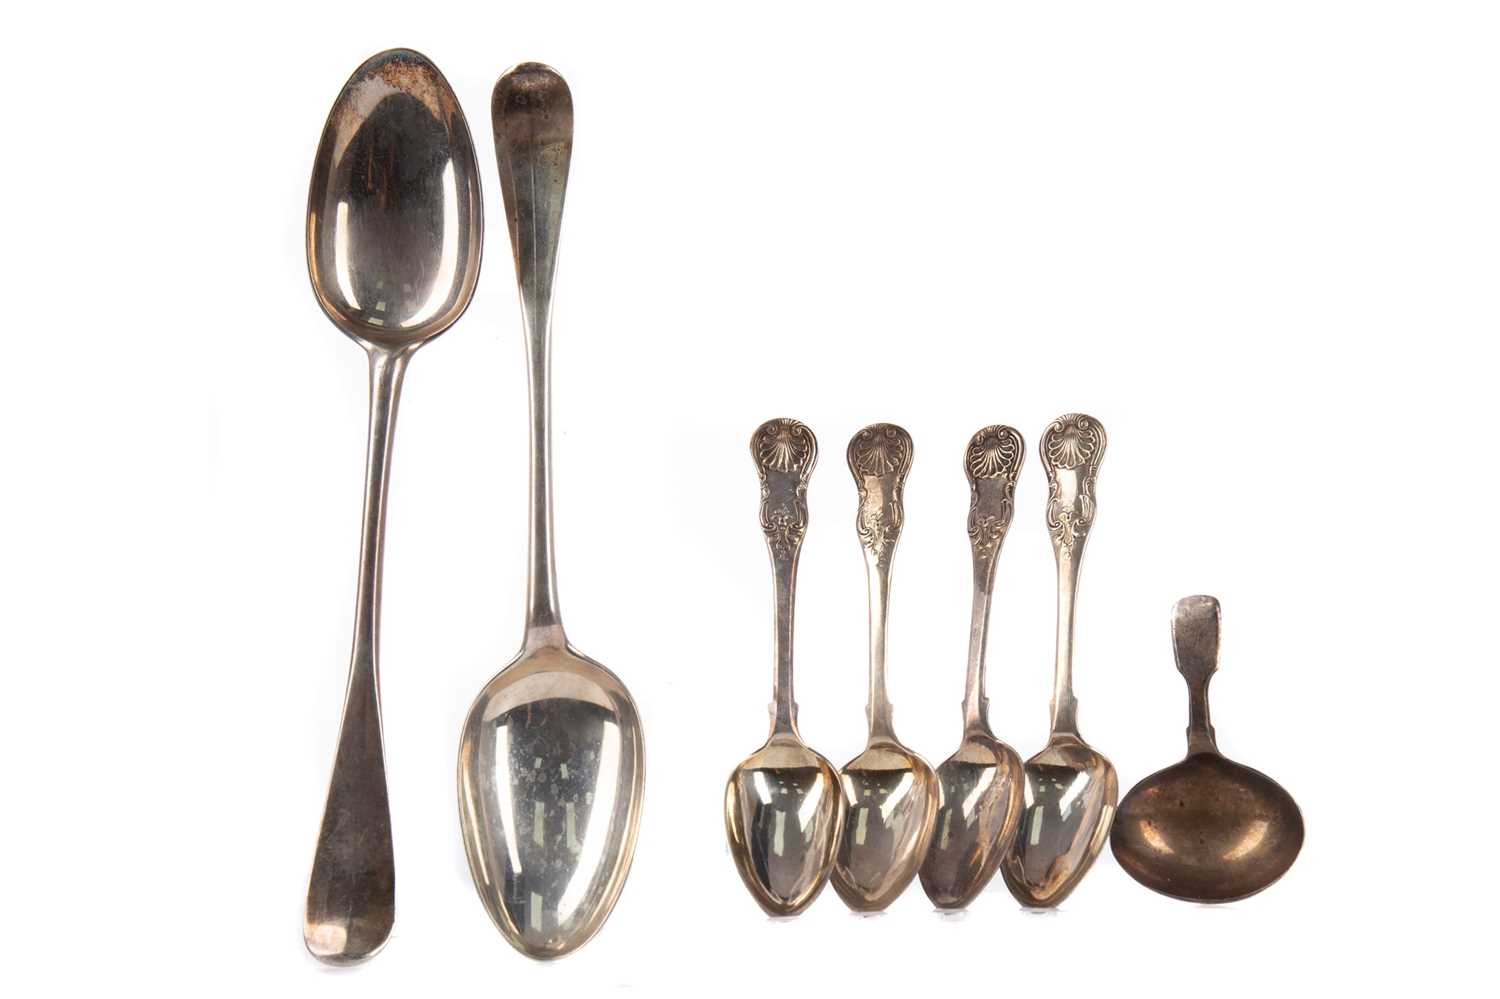 Lot 423 - A PAIR OF SILVER HANOVERIAN PATTERN TABLE SPOONS AND OTHERS